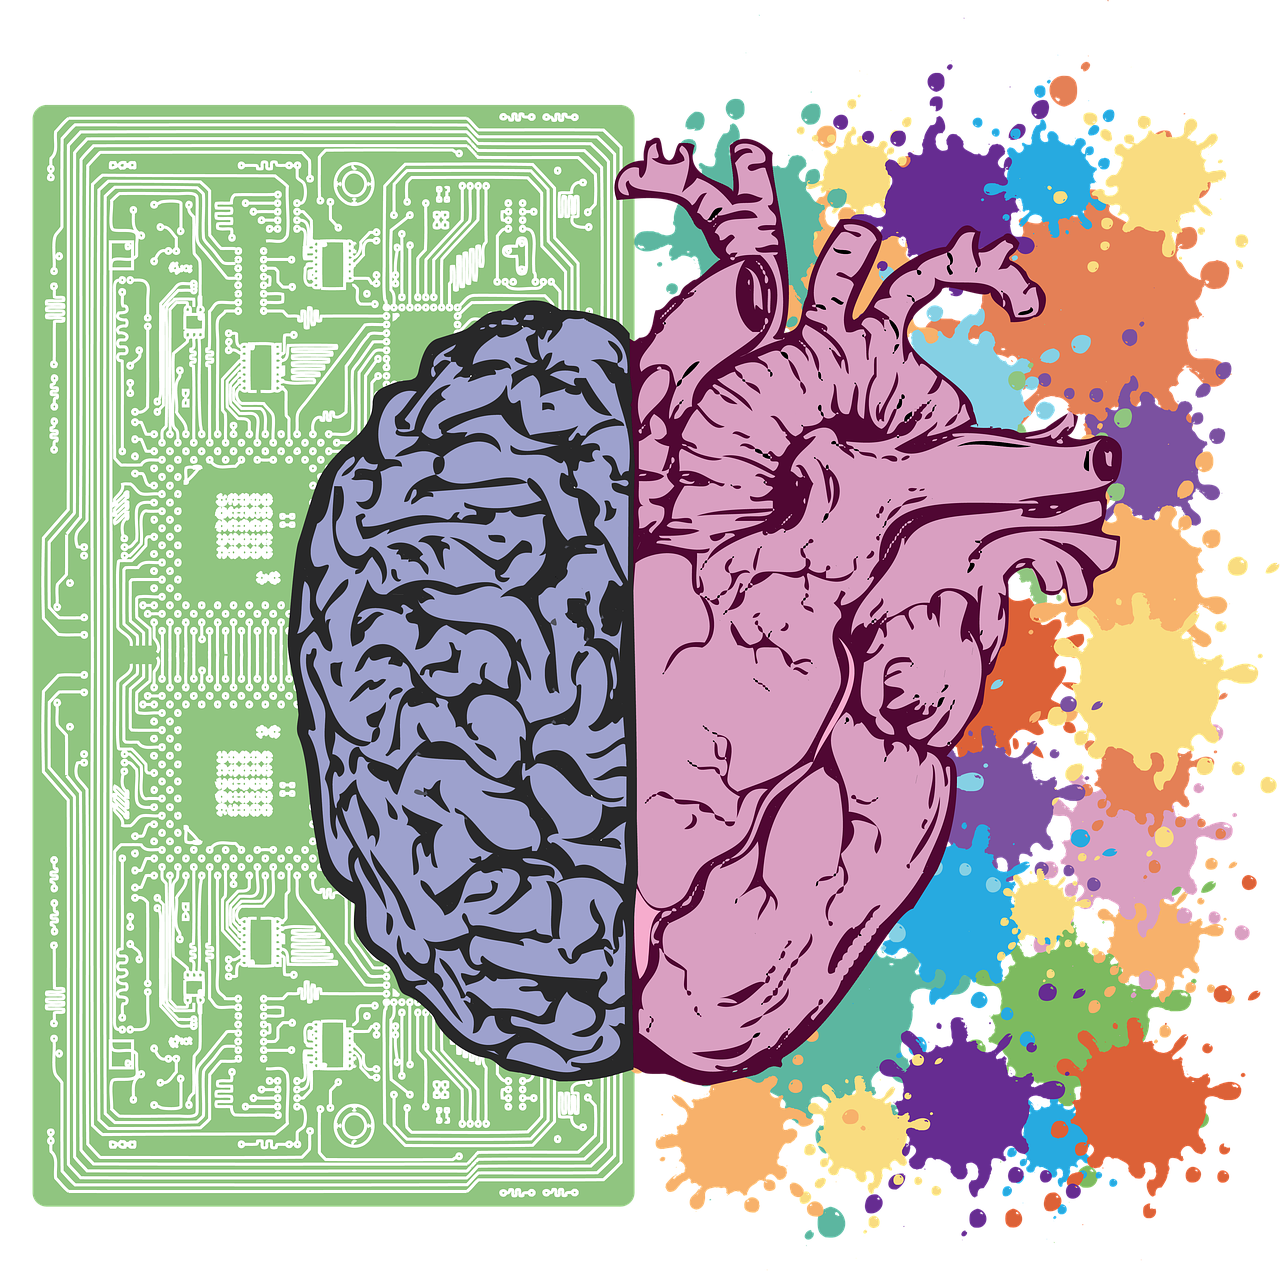 Neuromarketing Certification - Certification programs for 2019 are SOLD OUT.The earliest availability is Q2 in 2020.